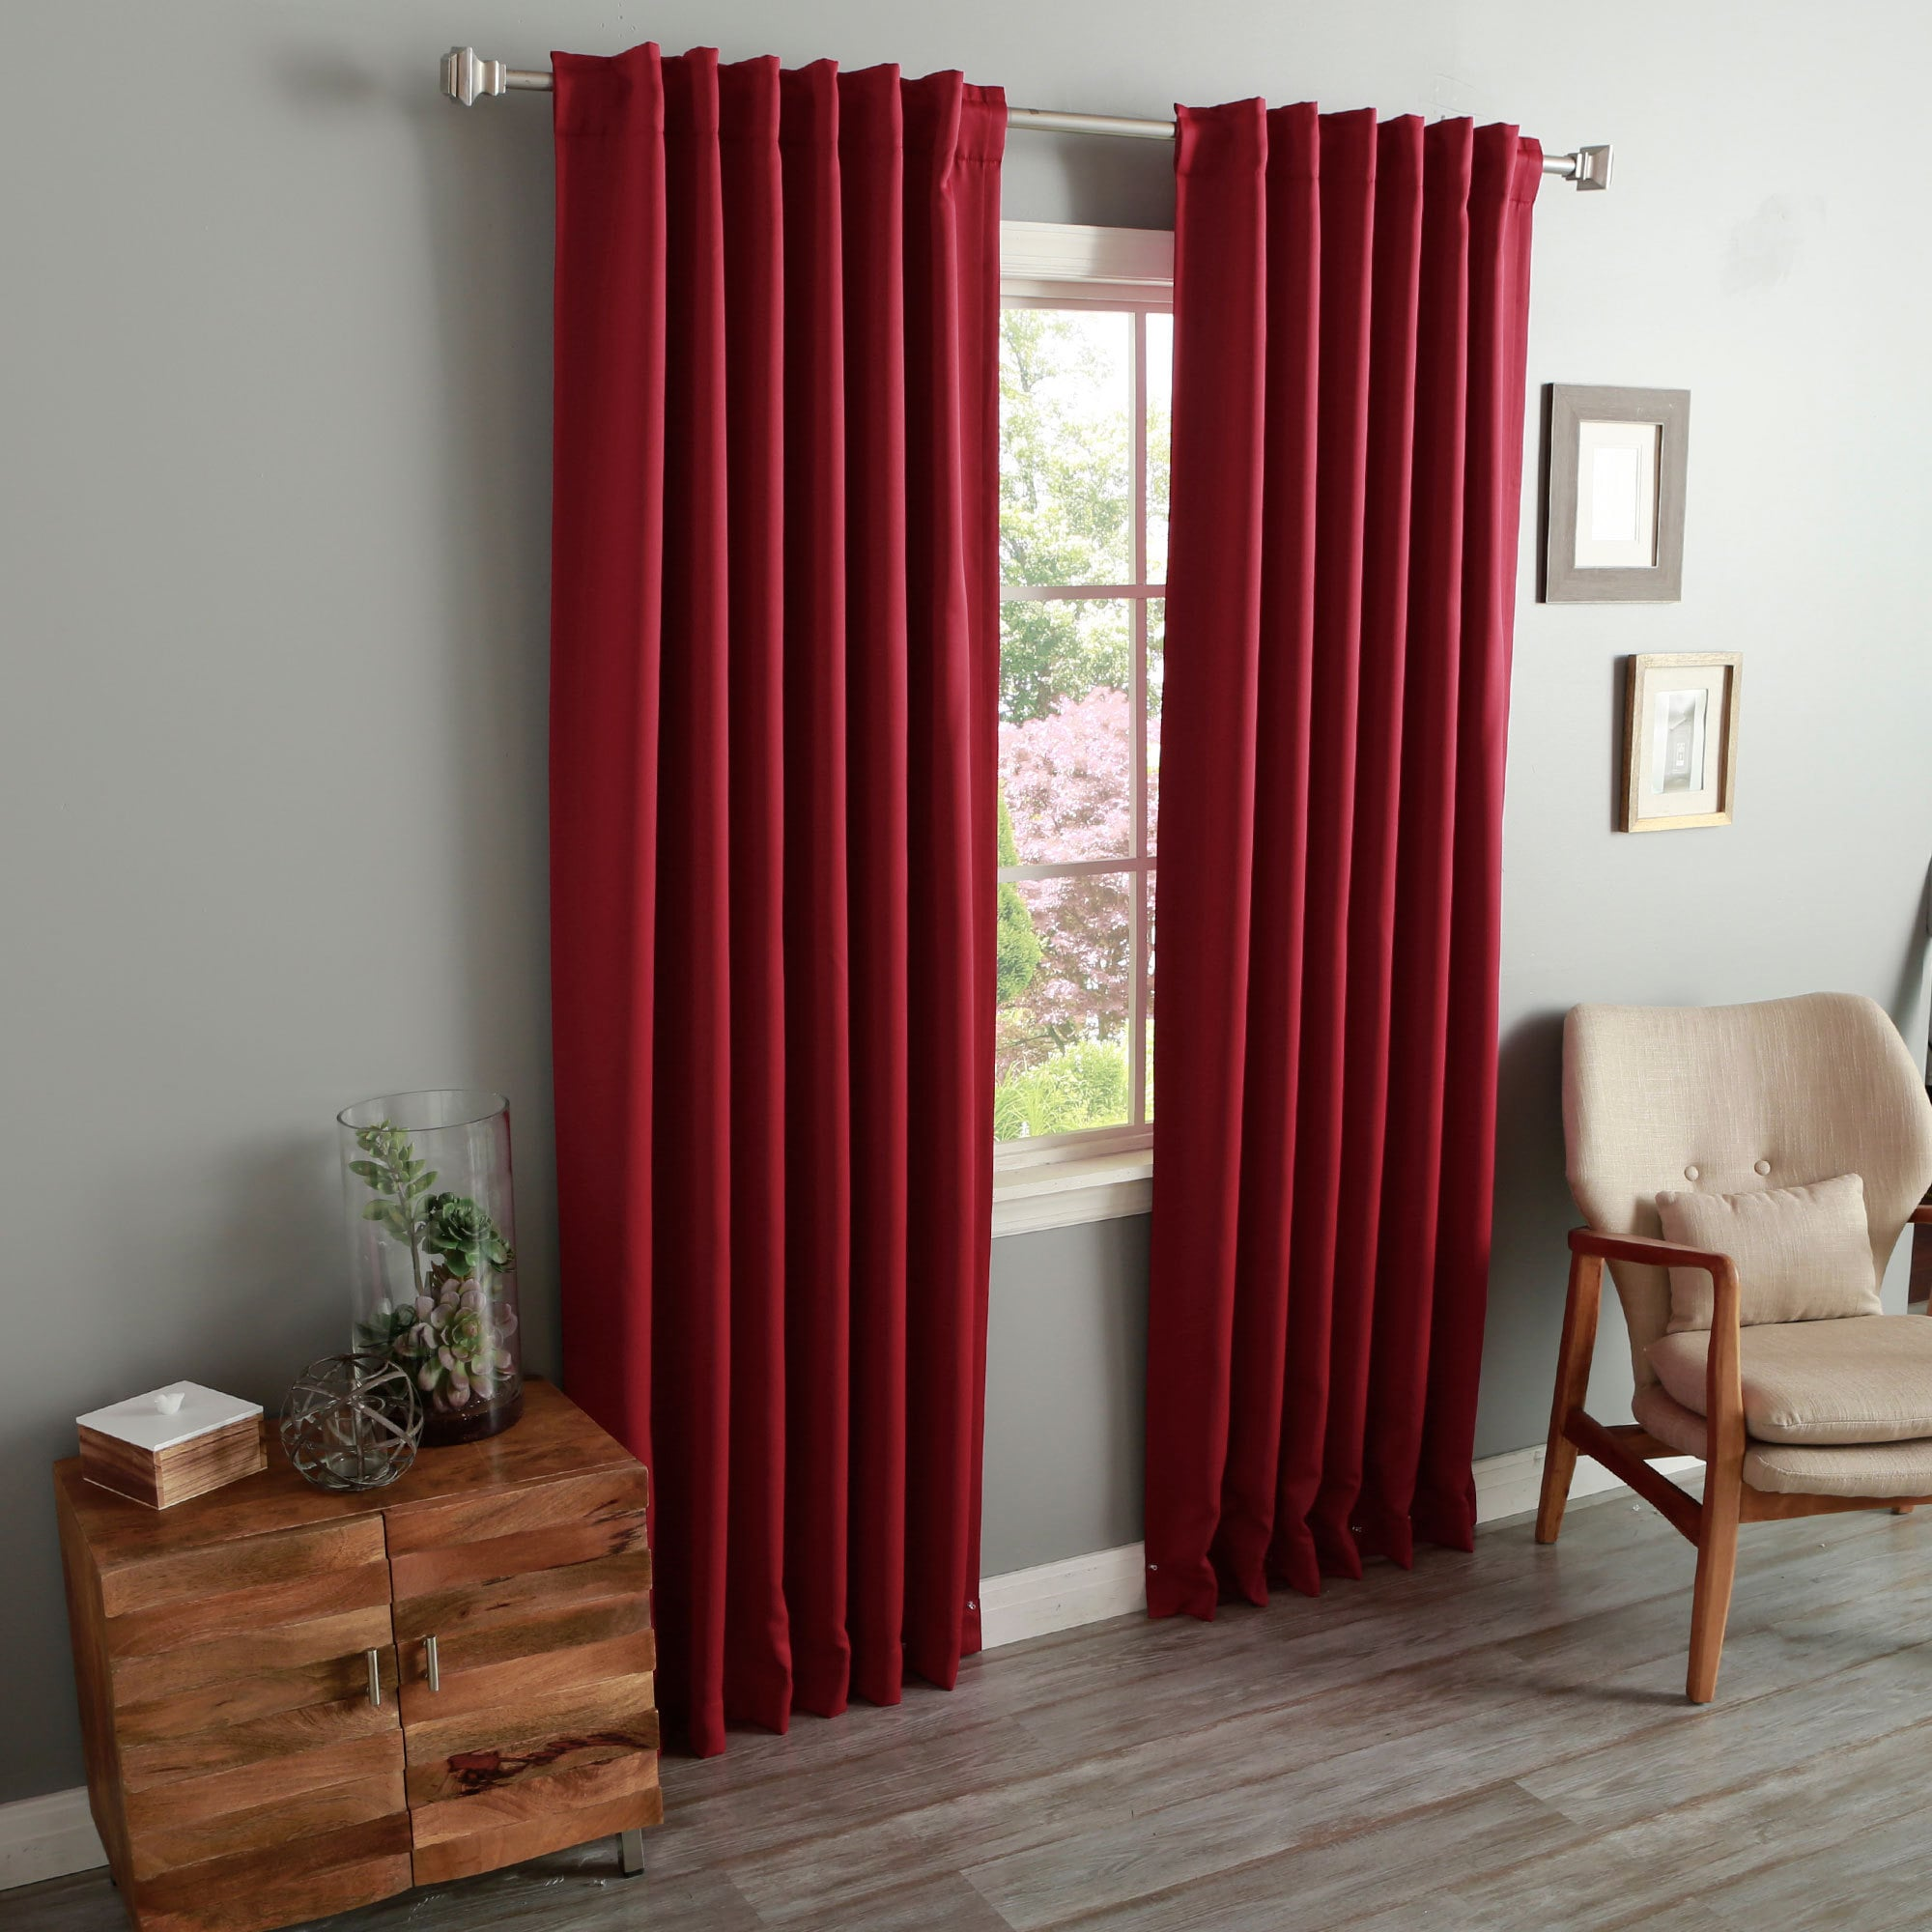 How Many Yards Of Fabric For Curtains How Many Yards Of Fabric For 84 Curtain Panel Elderbranch